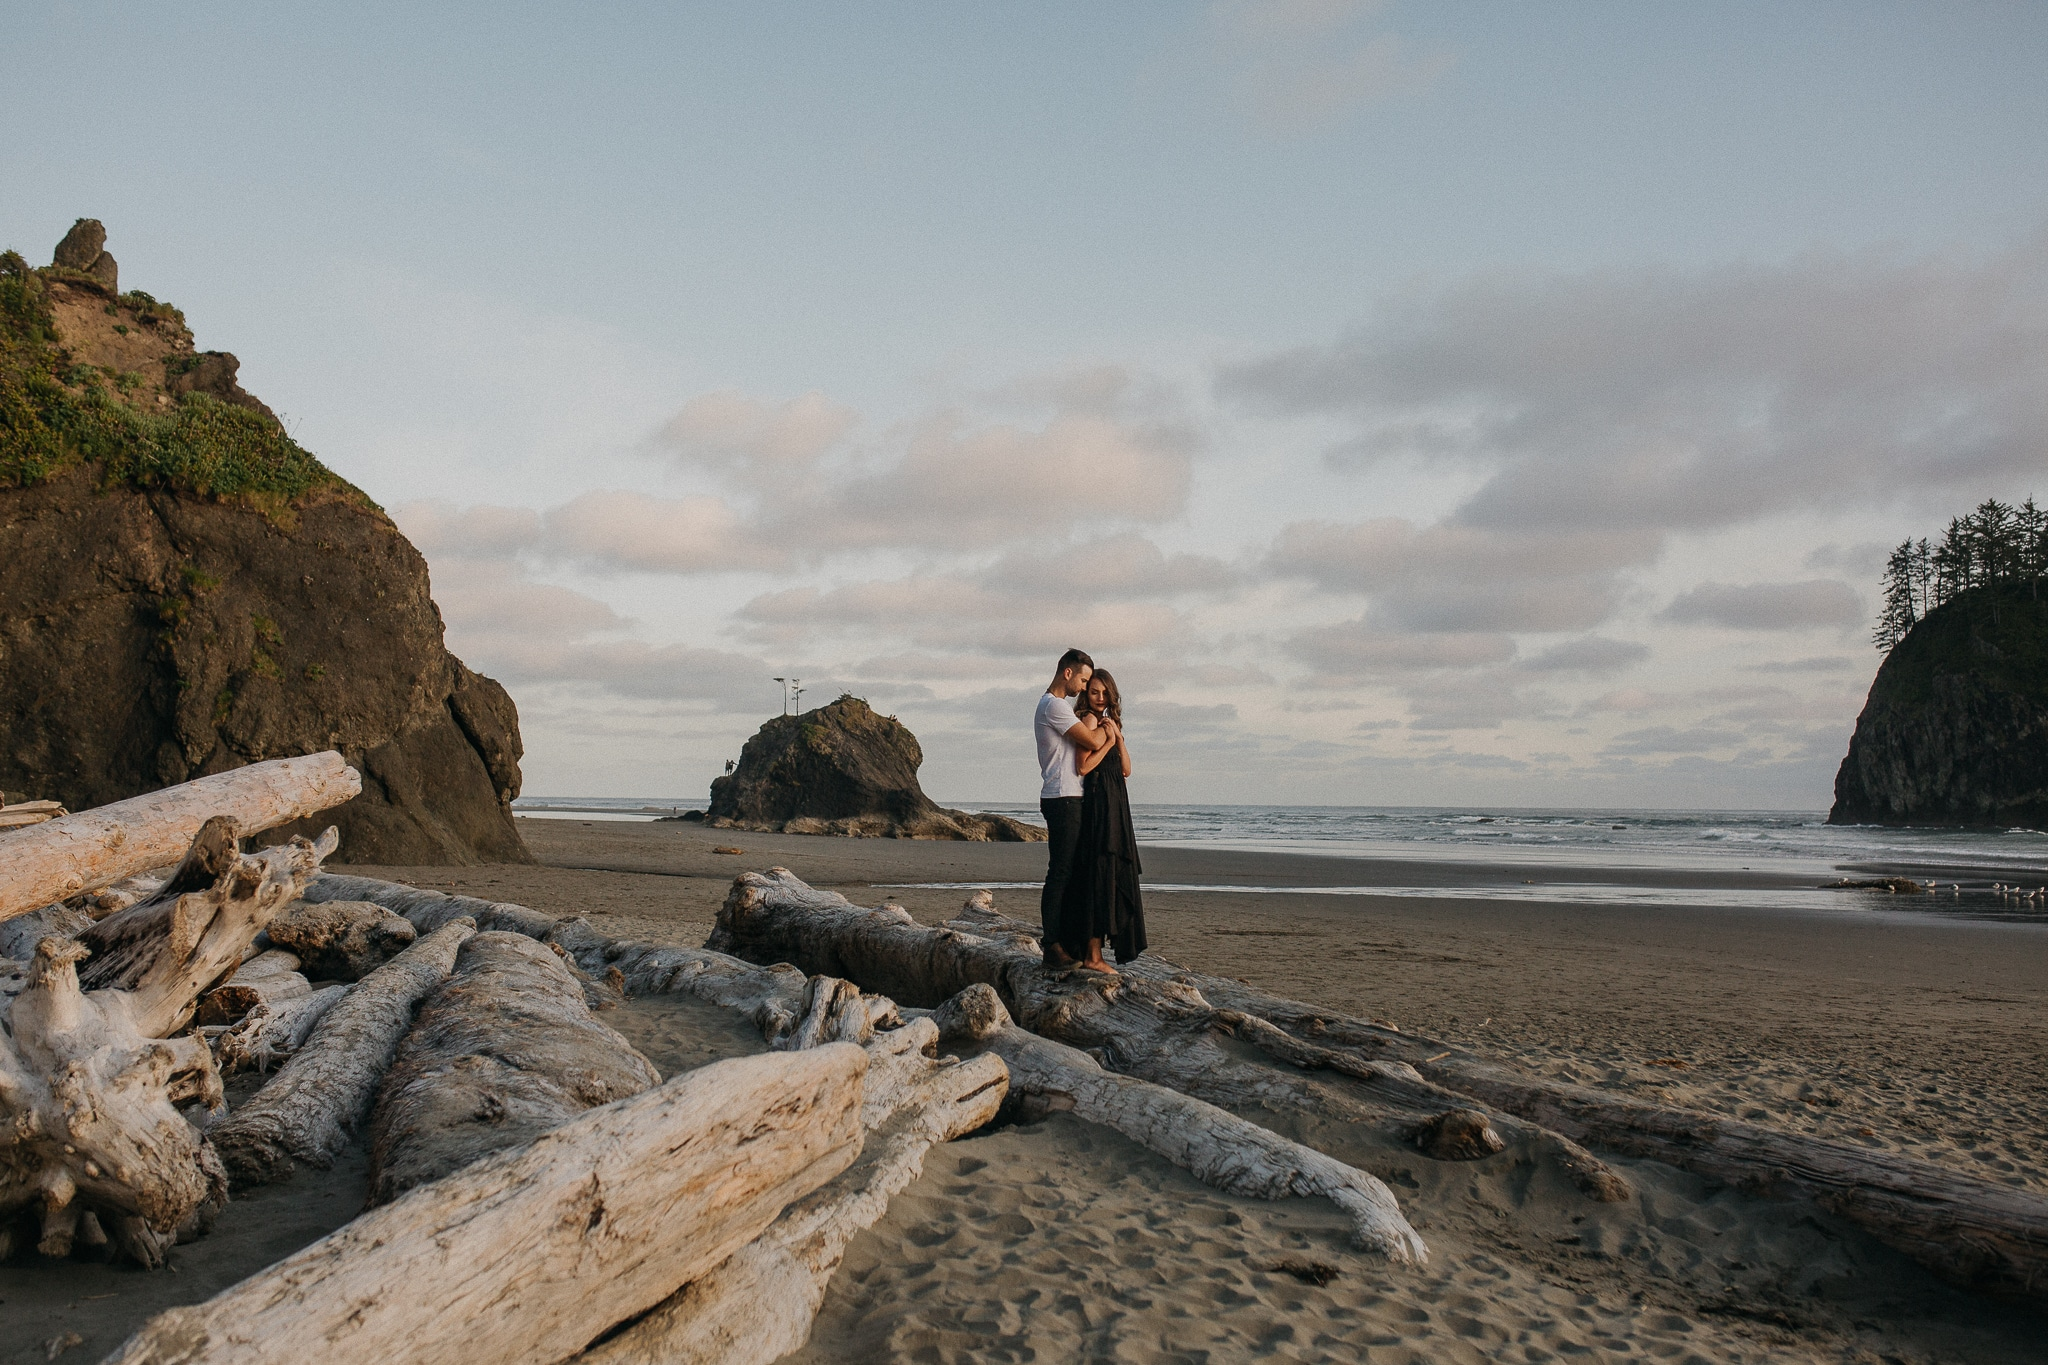 Olympic National Forest Engagement Photos, Olympic National Park Engagement Photos, Washington Engagement Photographer, La Push Beach engagement photos, Washington elopement photographer, Best elopement photographers in Washington, Best Washington engagement photographers, Fun Engagement photo ideas, beach Engagement photos, adventurous Engagement session, Save the date photo ideas, Olympic National Park La Push, adventure elopement photographer, la push beach Washington